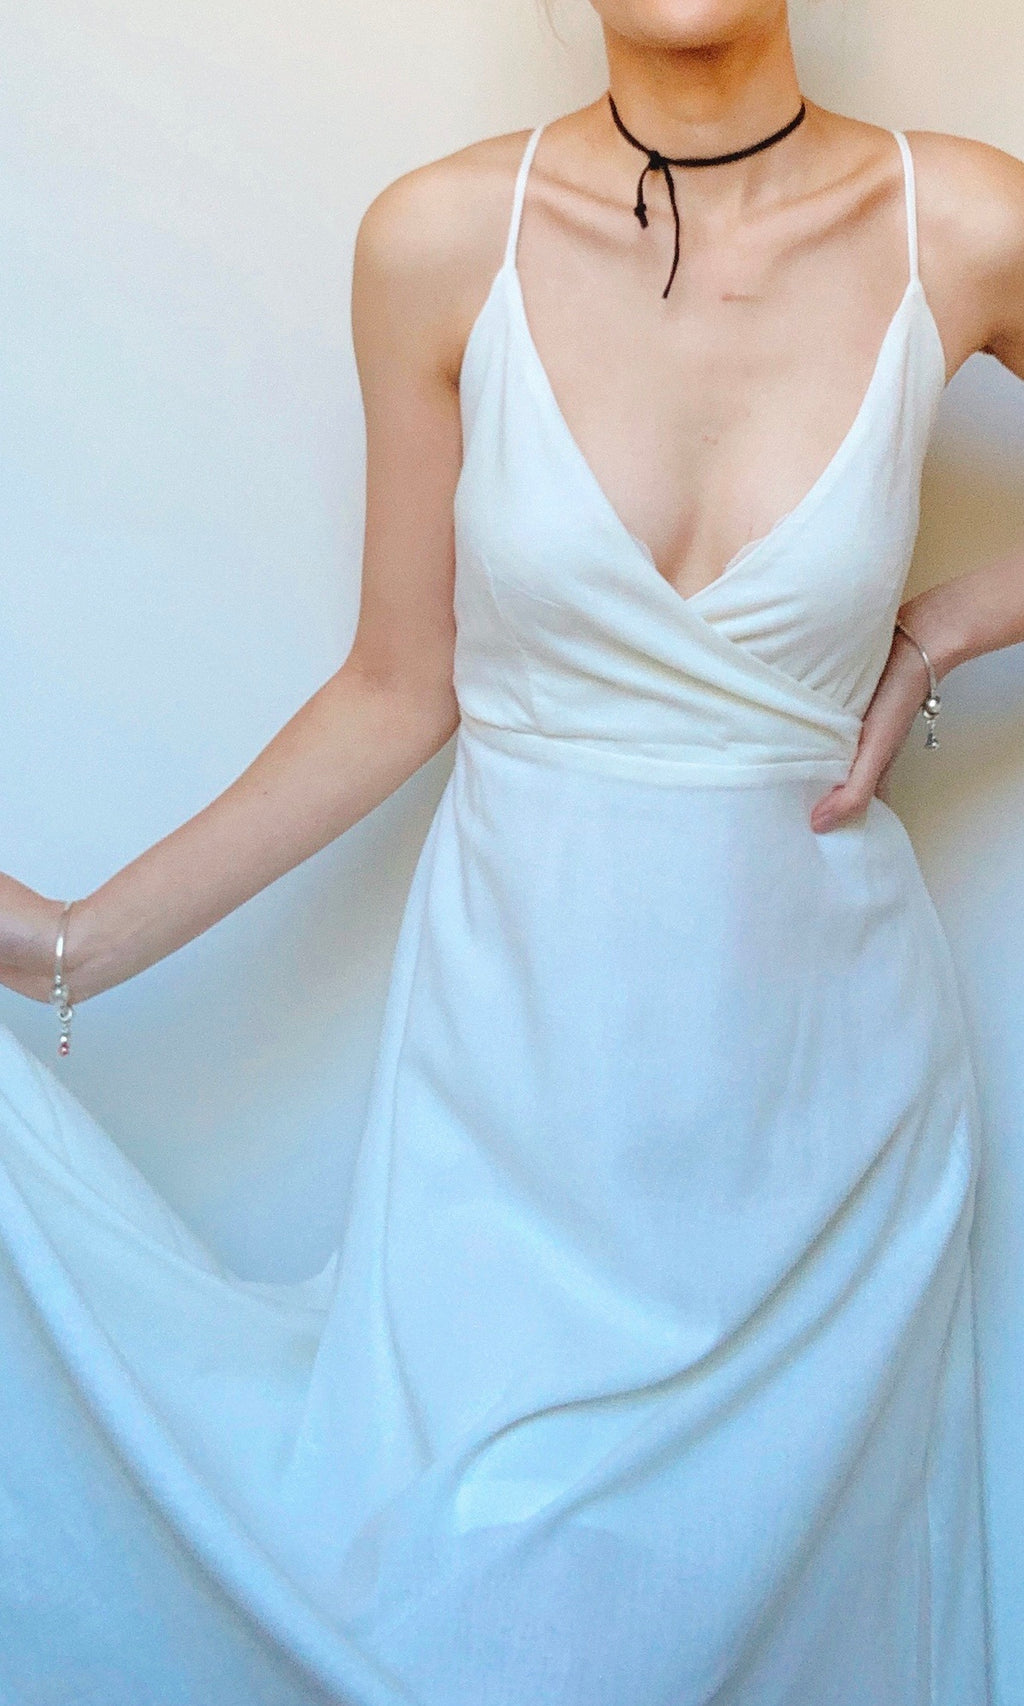 AFTERNOON DEW LINEN MIDI DRESS BACKLESS IN WHITE - DRESS - Koogal.com.au